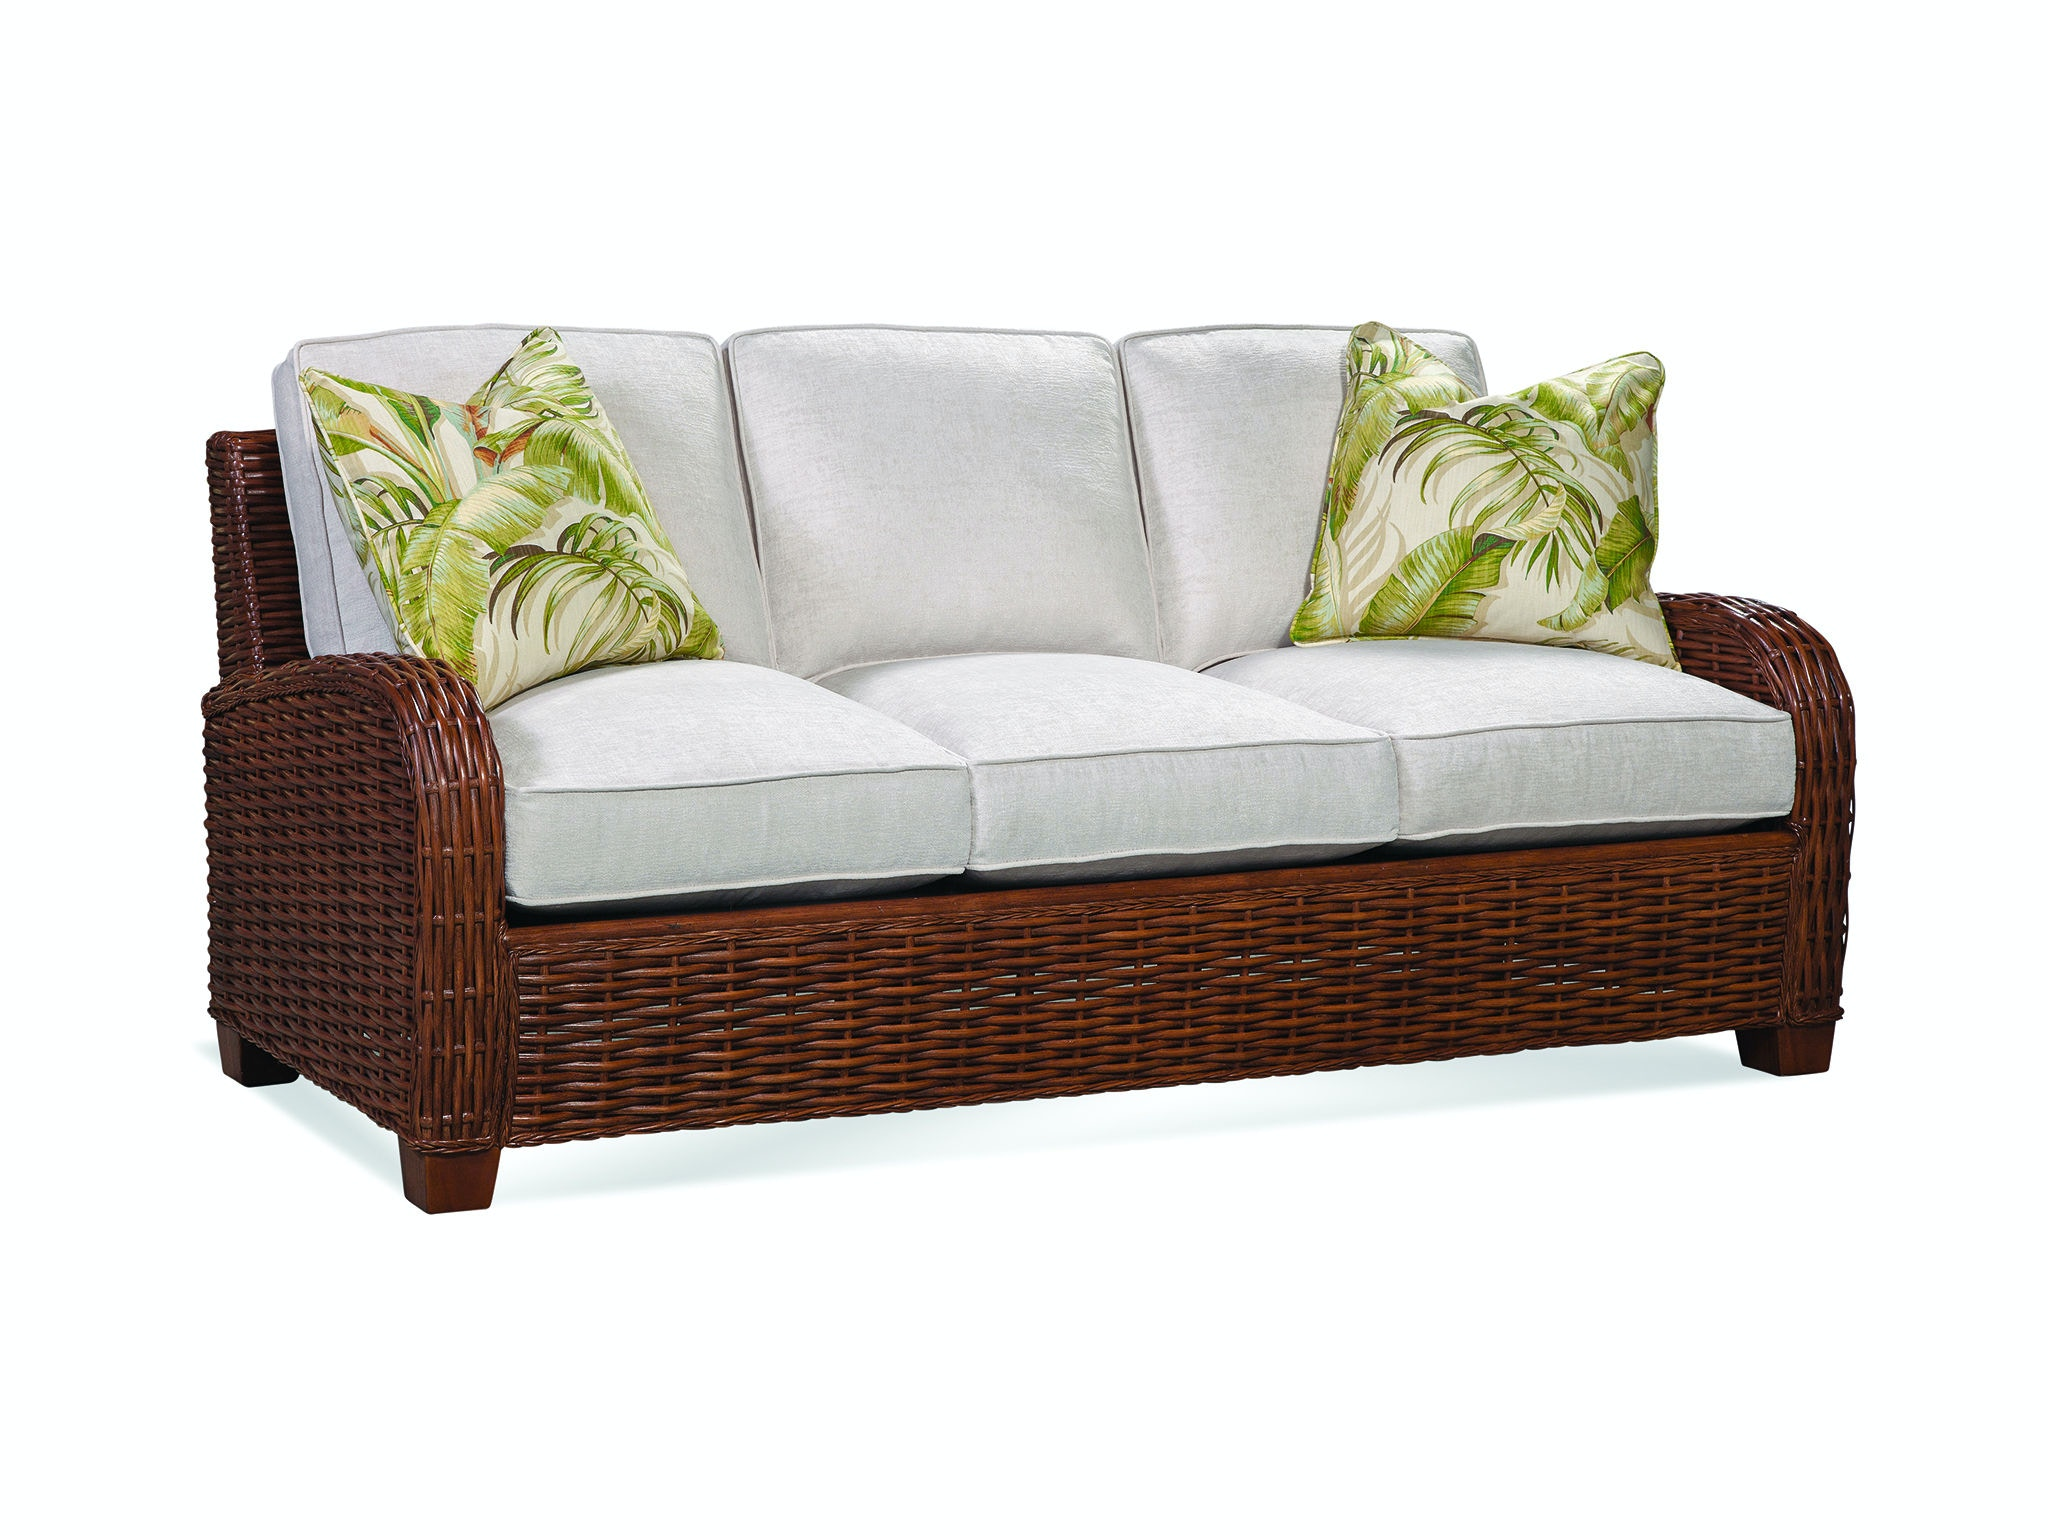 Beautiful Braxton Culler Sofa- Design Ideas Collections